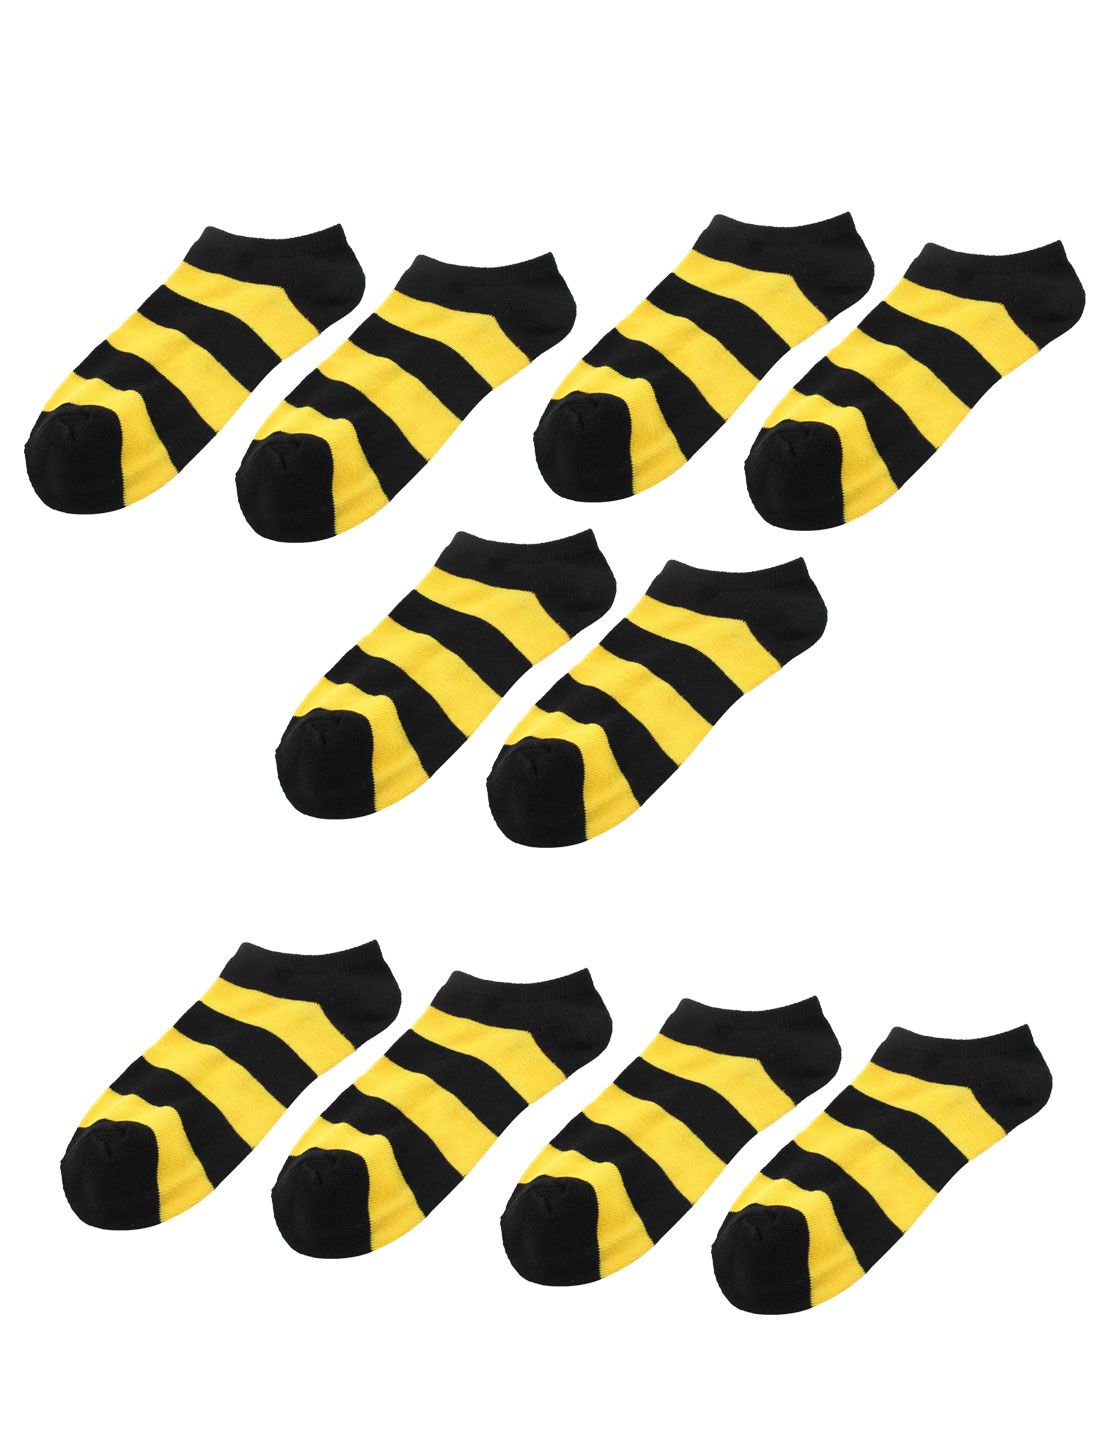 5 Pairs Strips Pattern Stretchy Cotton Blends Cuff Short Socks Yellow for Lady